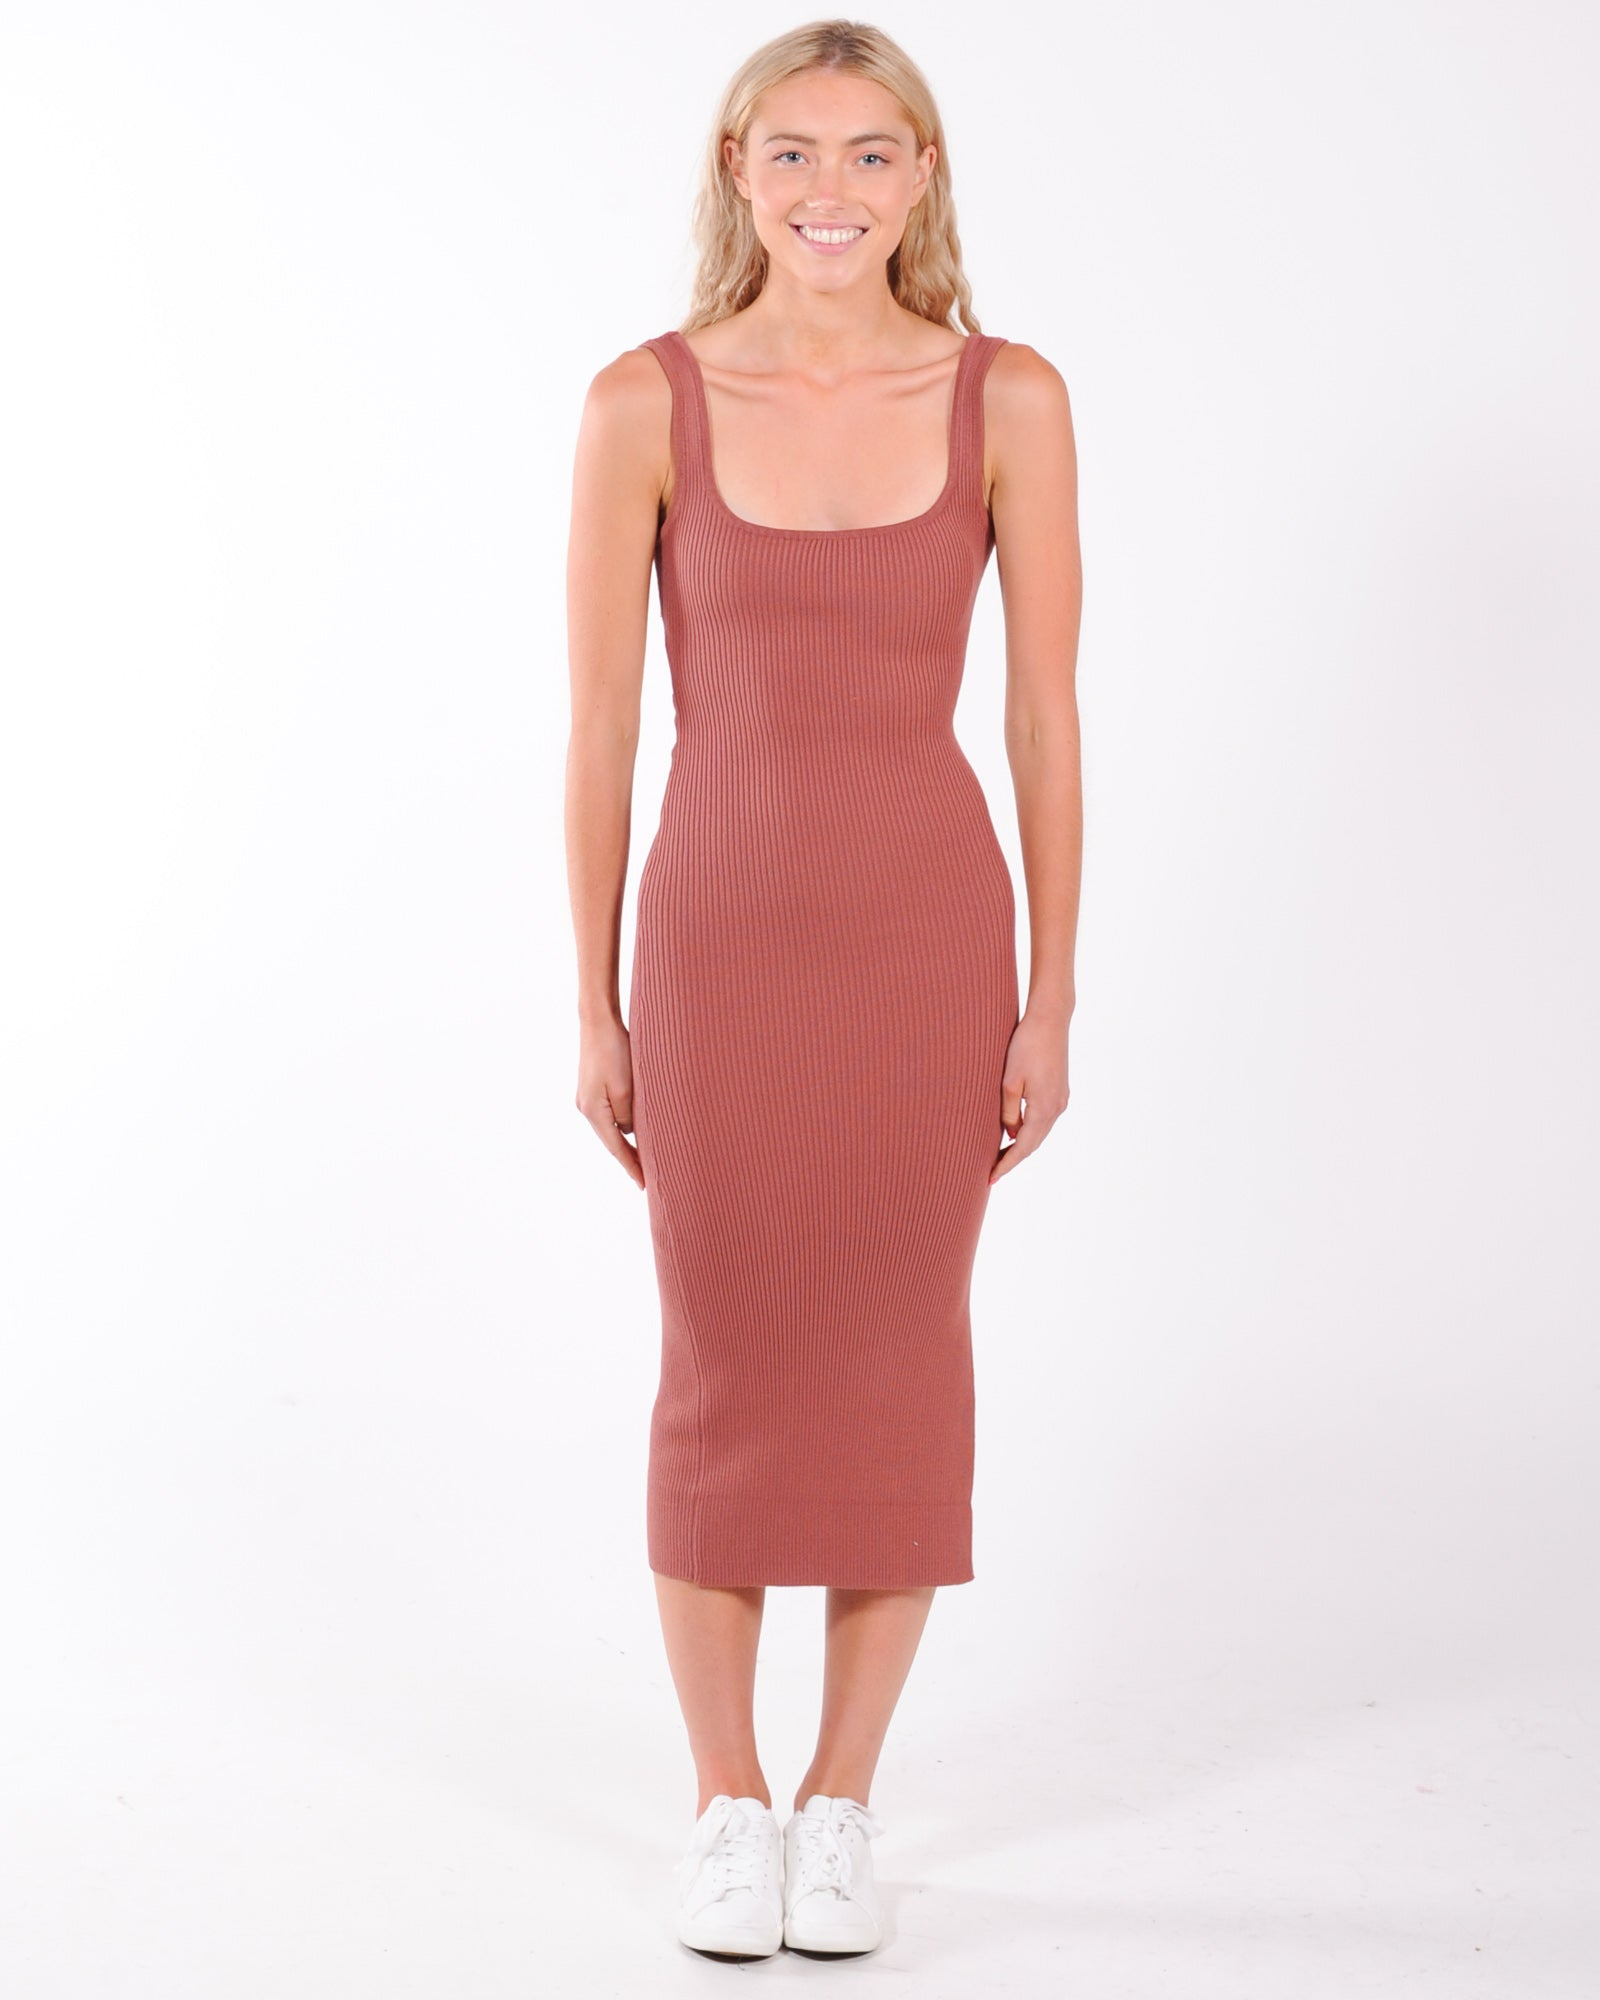 On The Guest List Midi Dress - Chocolate